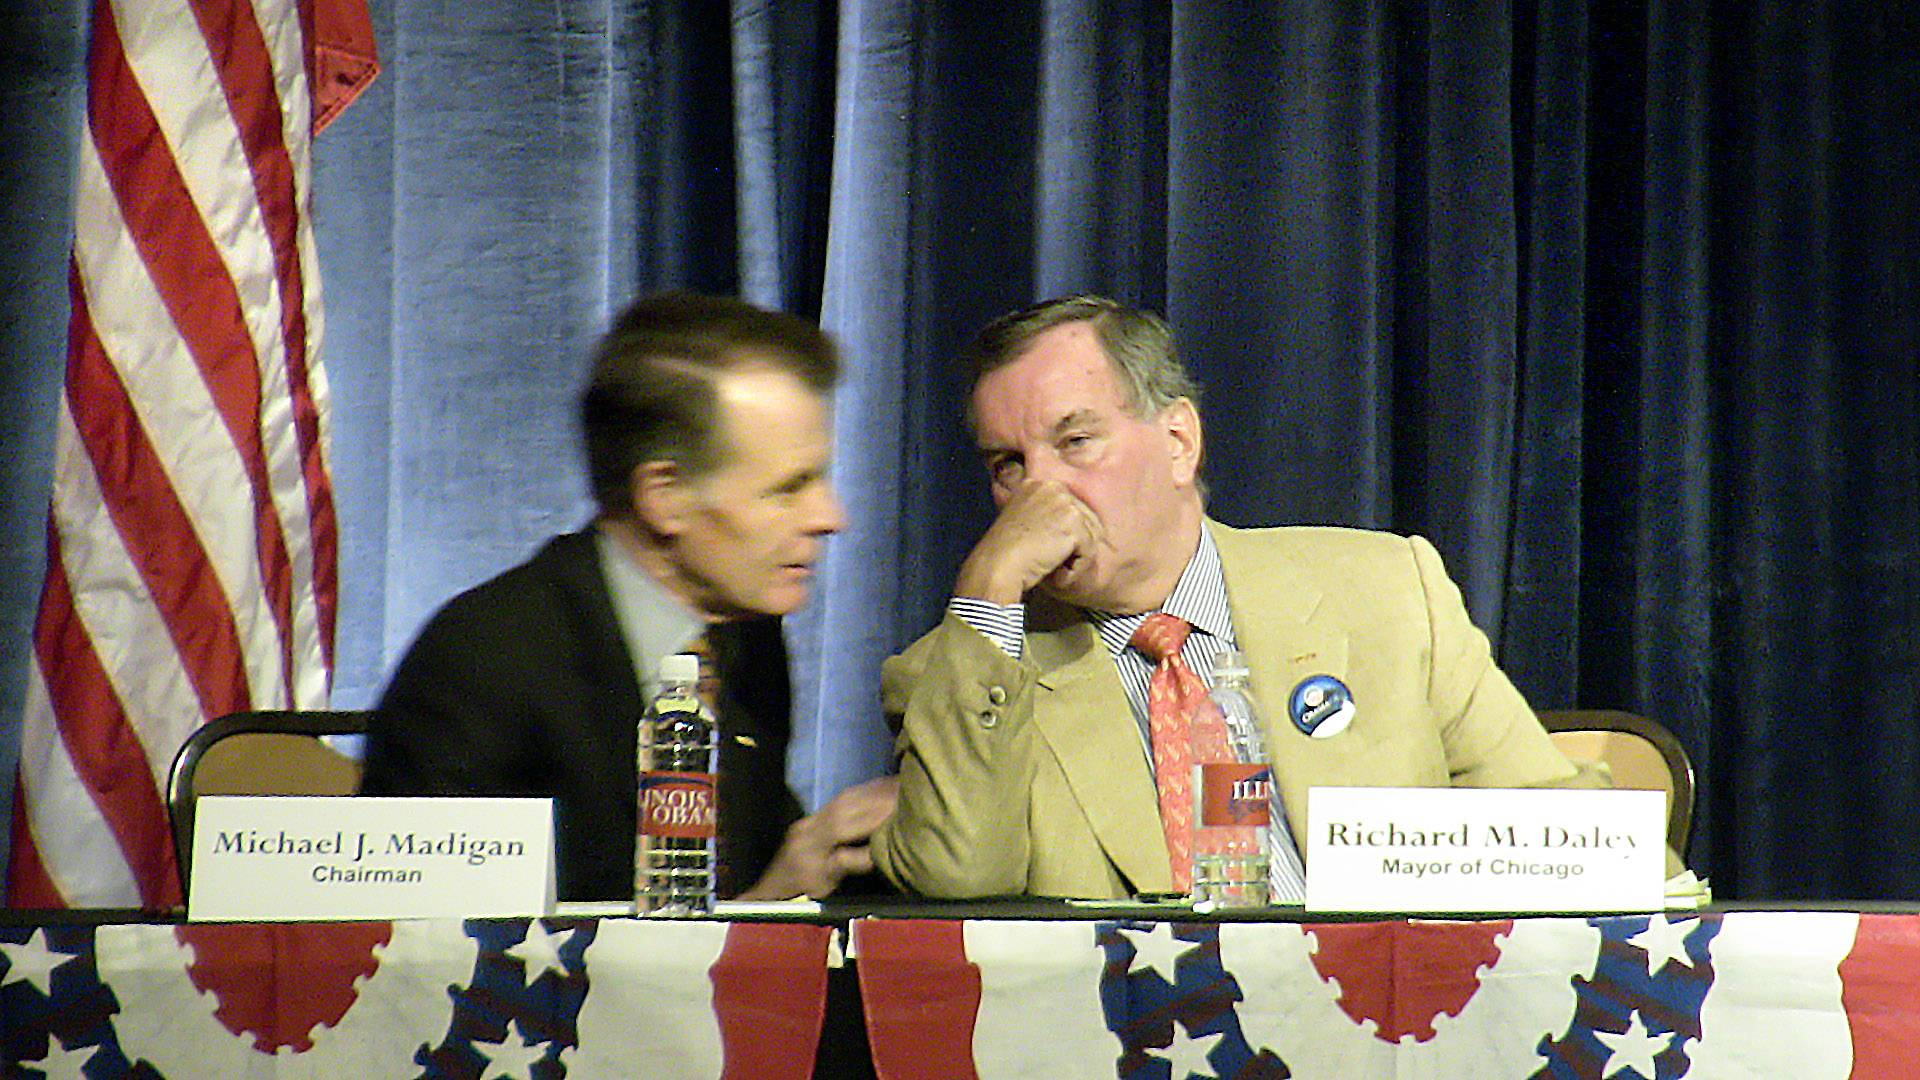 JOHN STARKS/jstarks@dailyherald.com, 2008Illinois House Speaker Michael J. Madigan and Chicago Mayor Richard M. Daley talk at an Illinois delegate meeting during the 2008 Democratic National Convention in Denver.